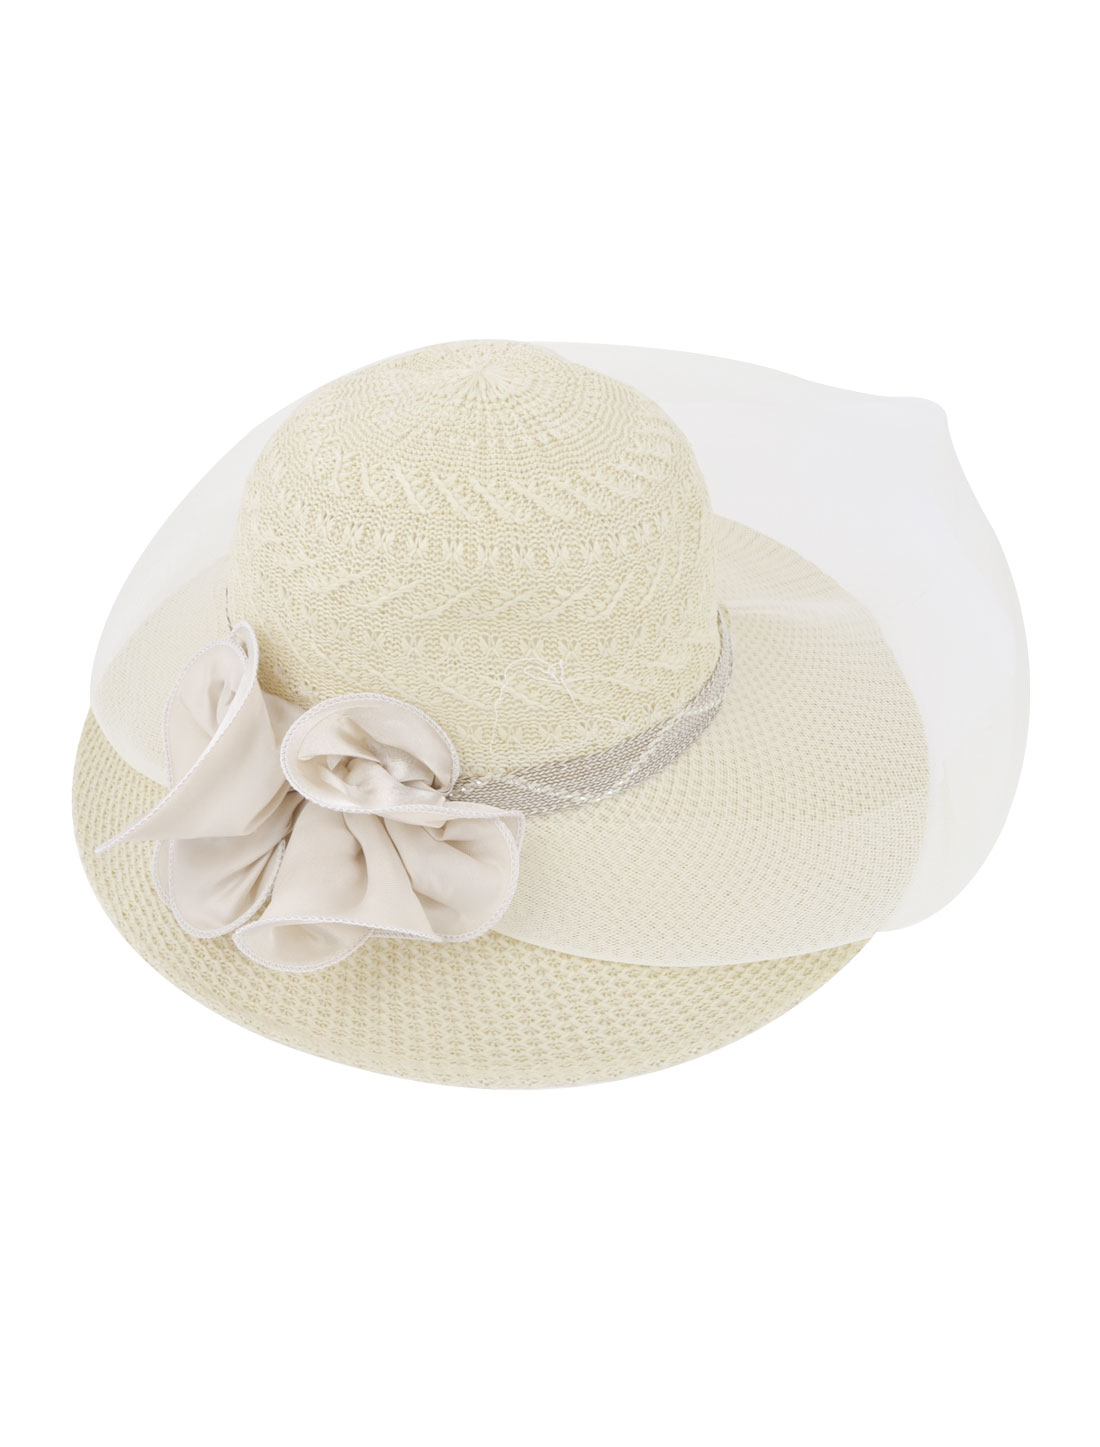 Lady Travel Beach White Gauze Surrounded Gray Polyester Flowers Detail Wide Brim Ivory Sun Hat Cap